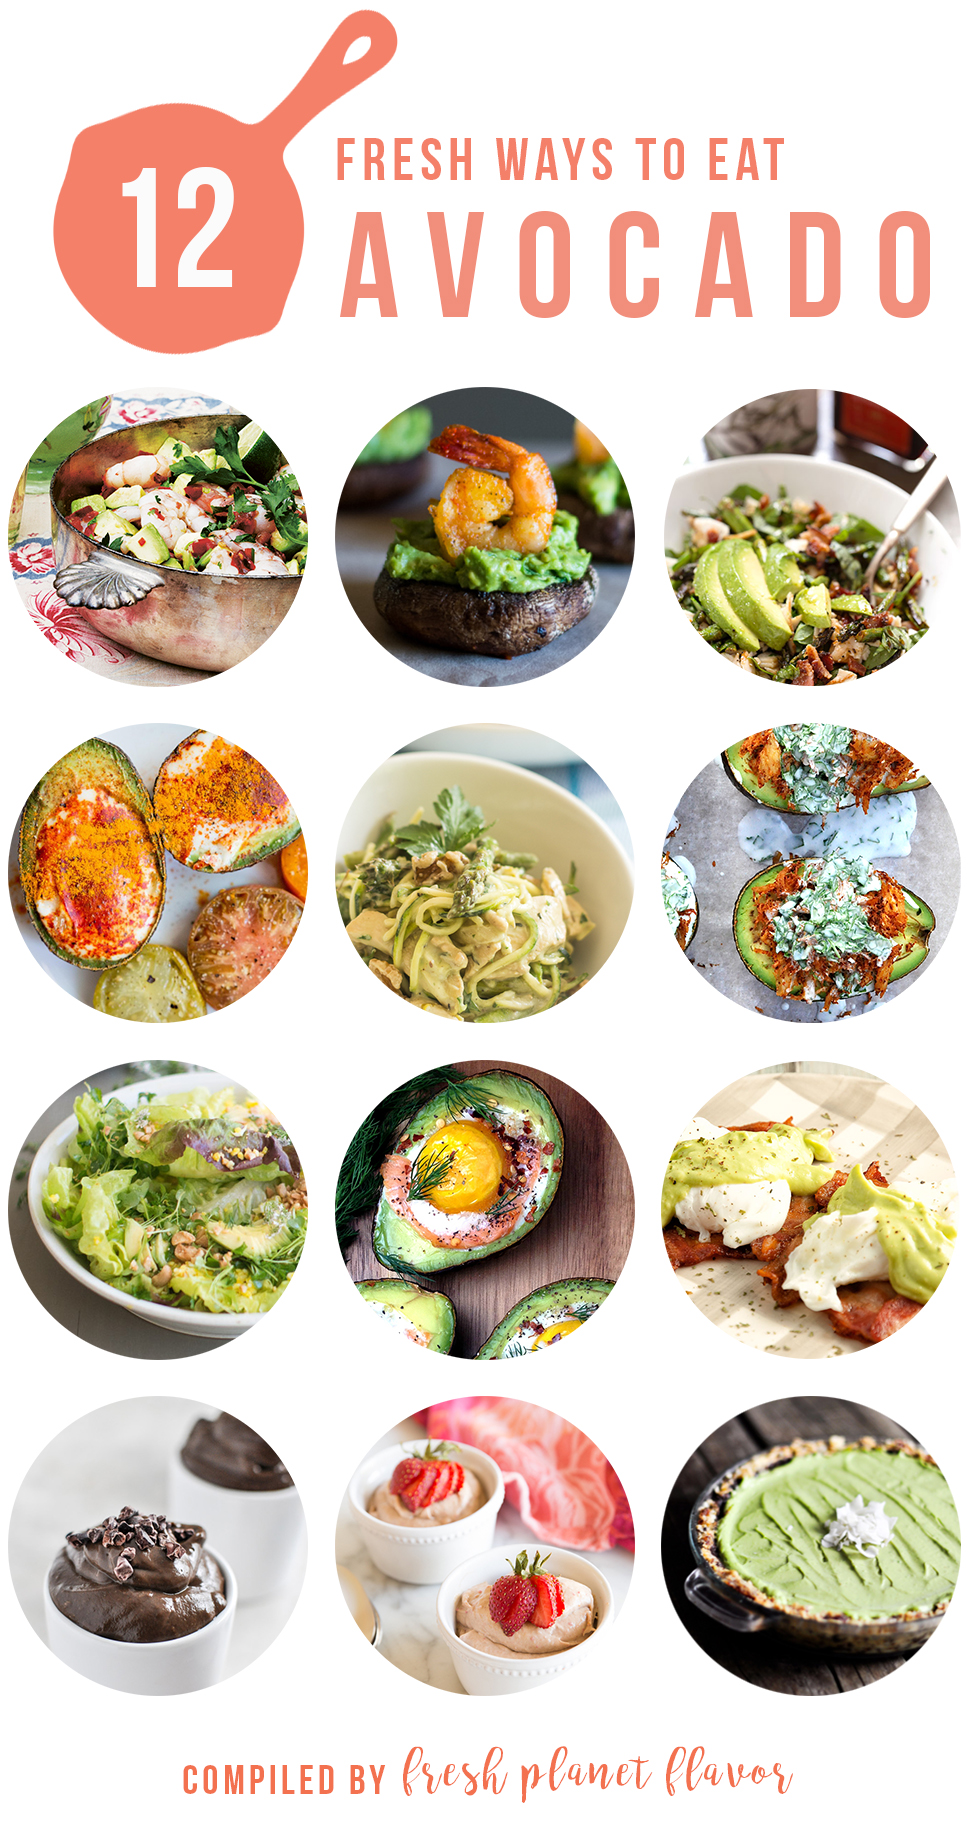 12 Fresh Avocado Recipes | Fresh Planet Flavor